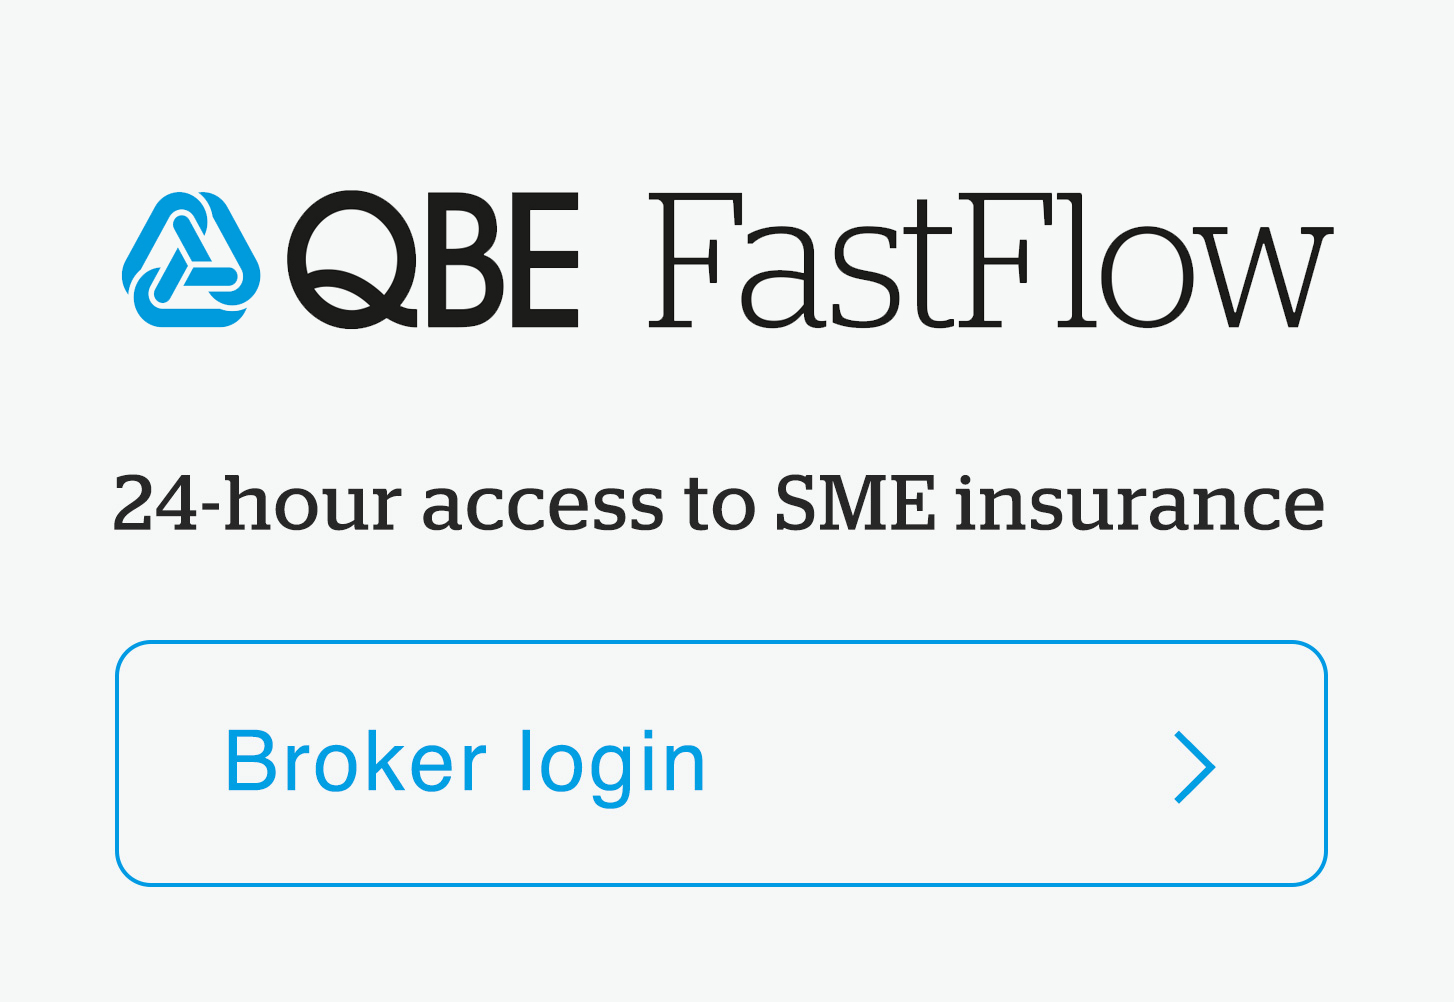 SME Insurance - QBE European Operations